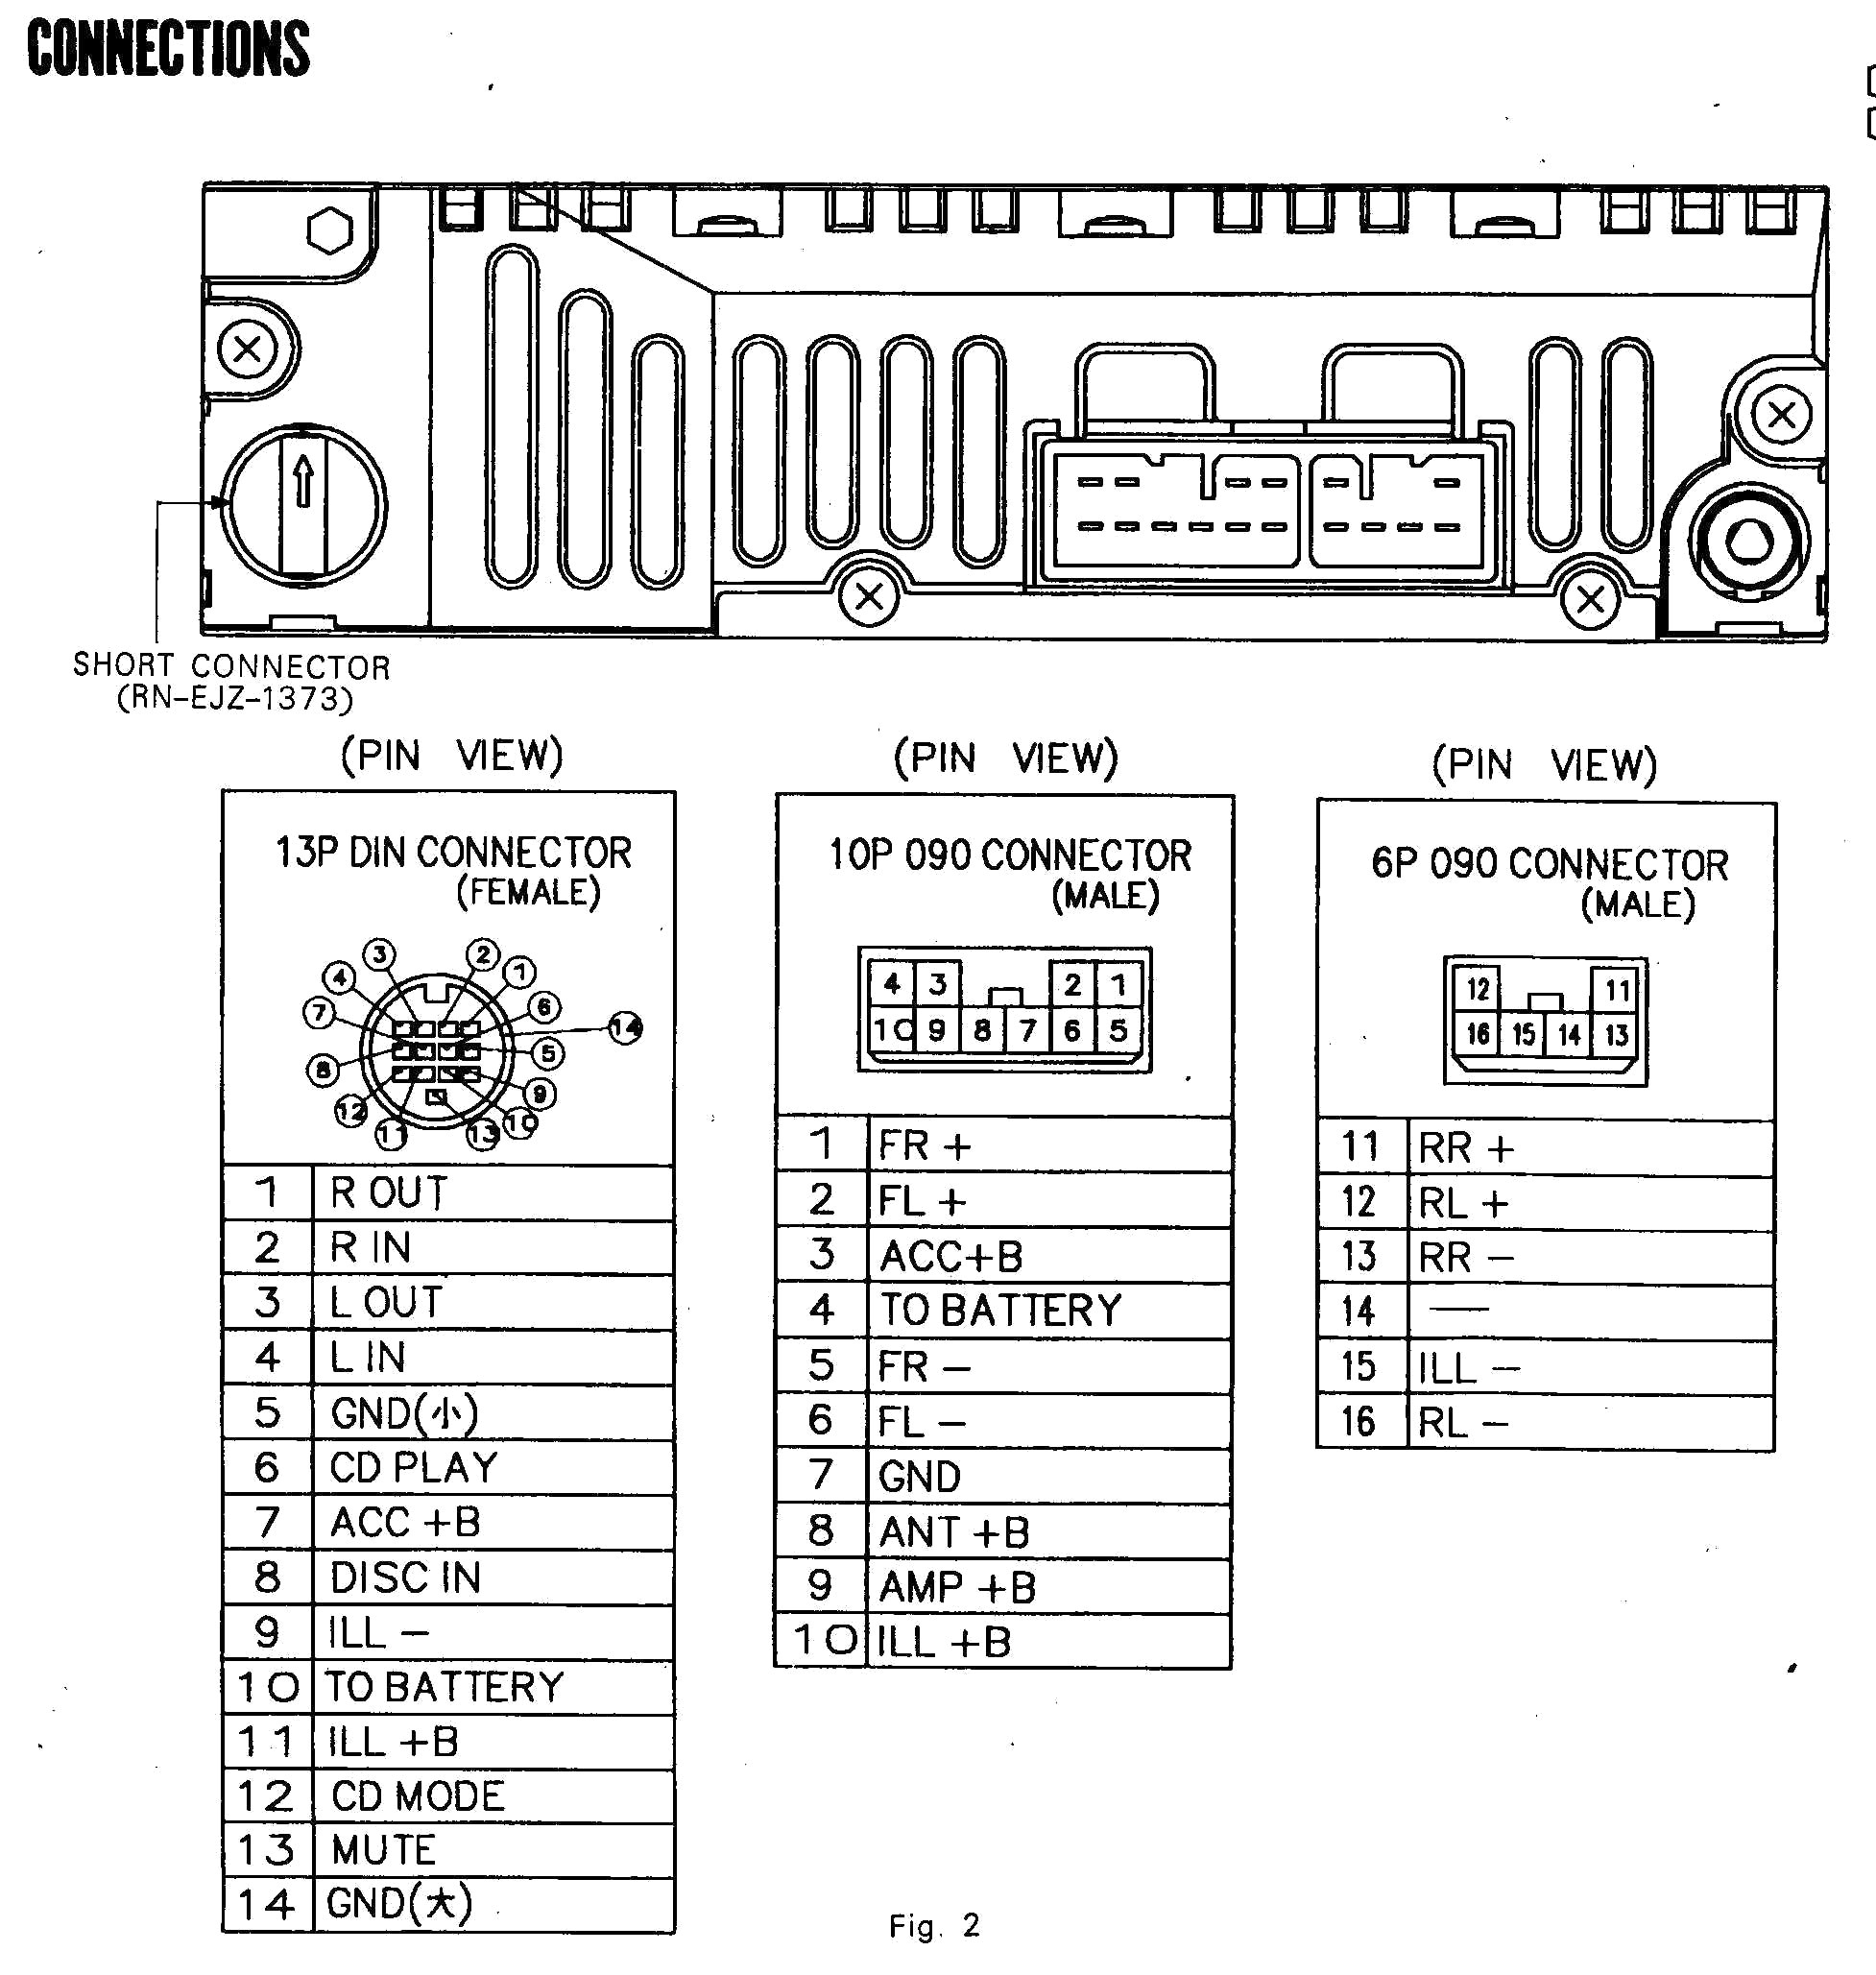 pioneer deh 150mp wiring harness diagram pioneer deh 150mp wiring diagram pioneer deh 150mp wiring diagram fresh wonderful avic n3 new 15s wiring diagram pioneer deh x6500bt wiring diagram data